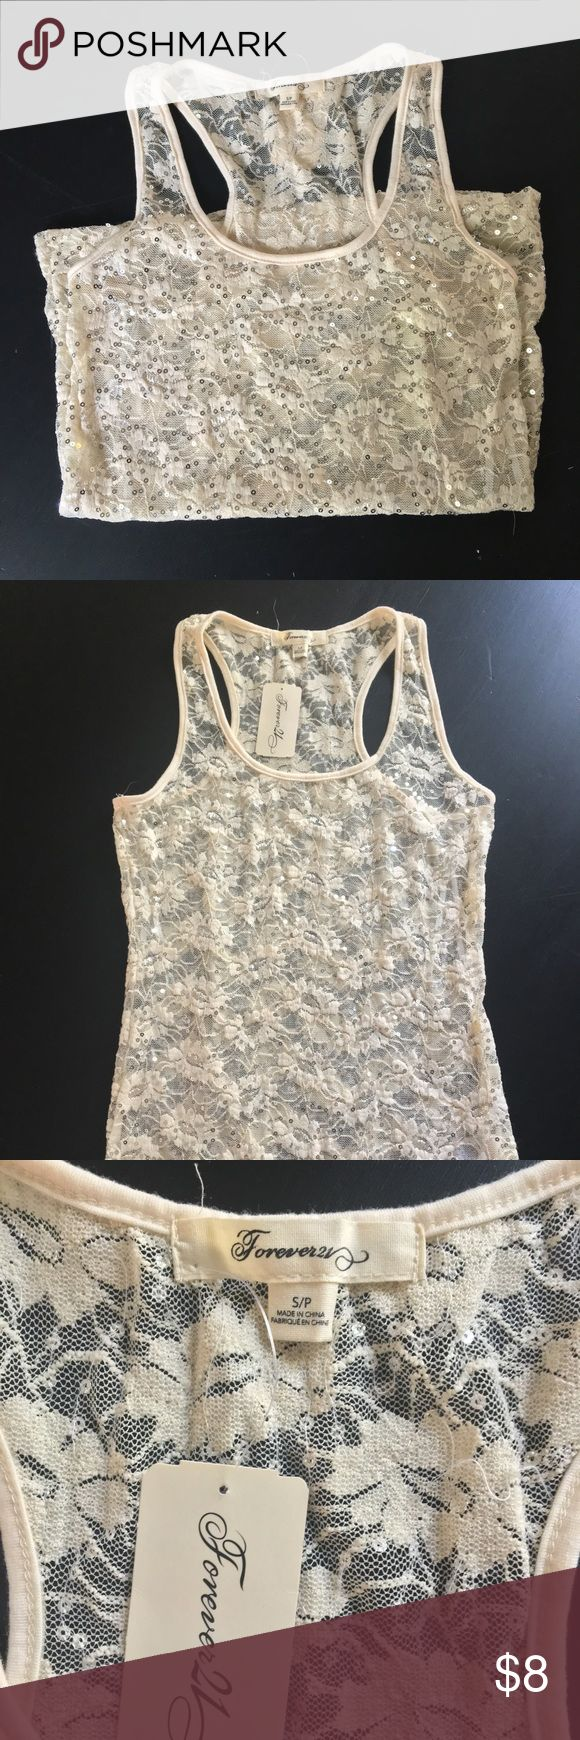 Sheer lace razorback tank with silver sequin Sheer lace razorback tank with silver sequin. Size Small. New with tags Forever 21 Tops Tank Tops